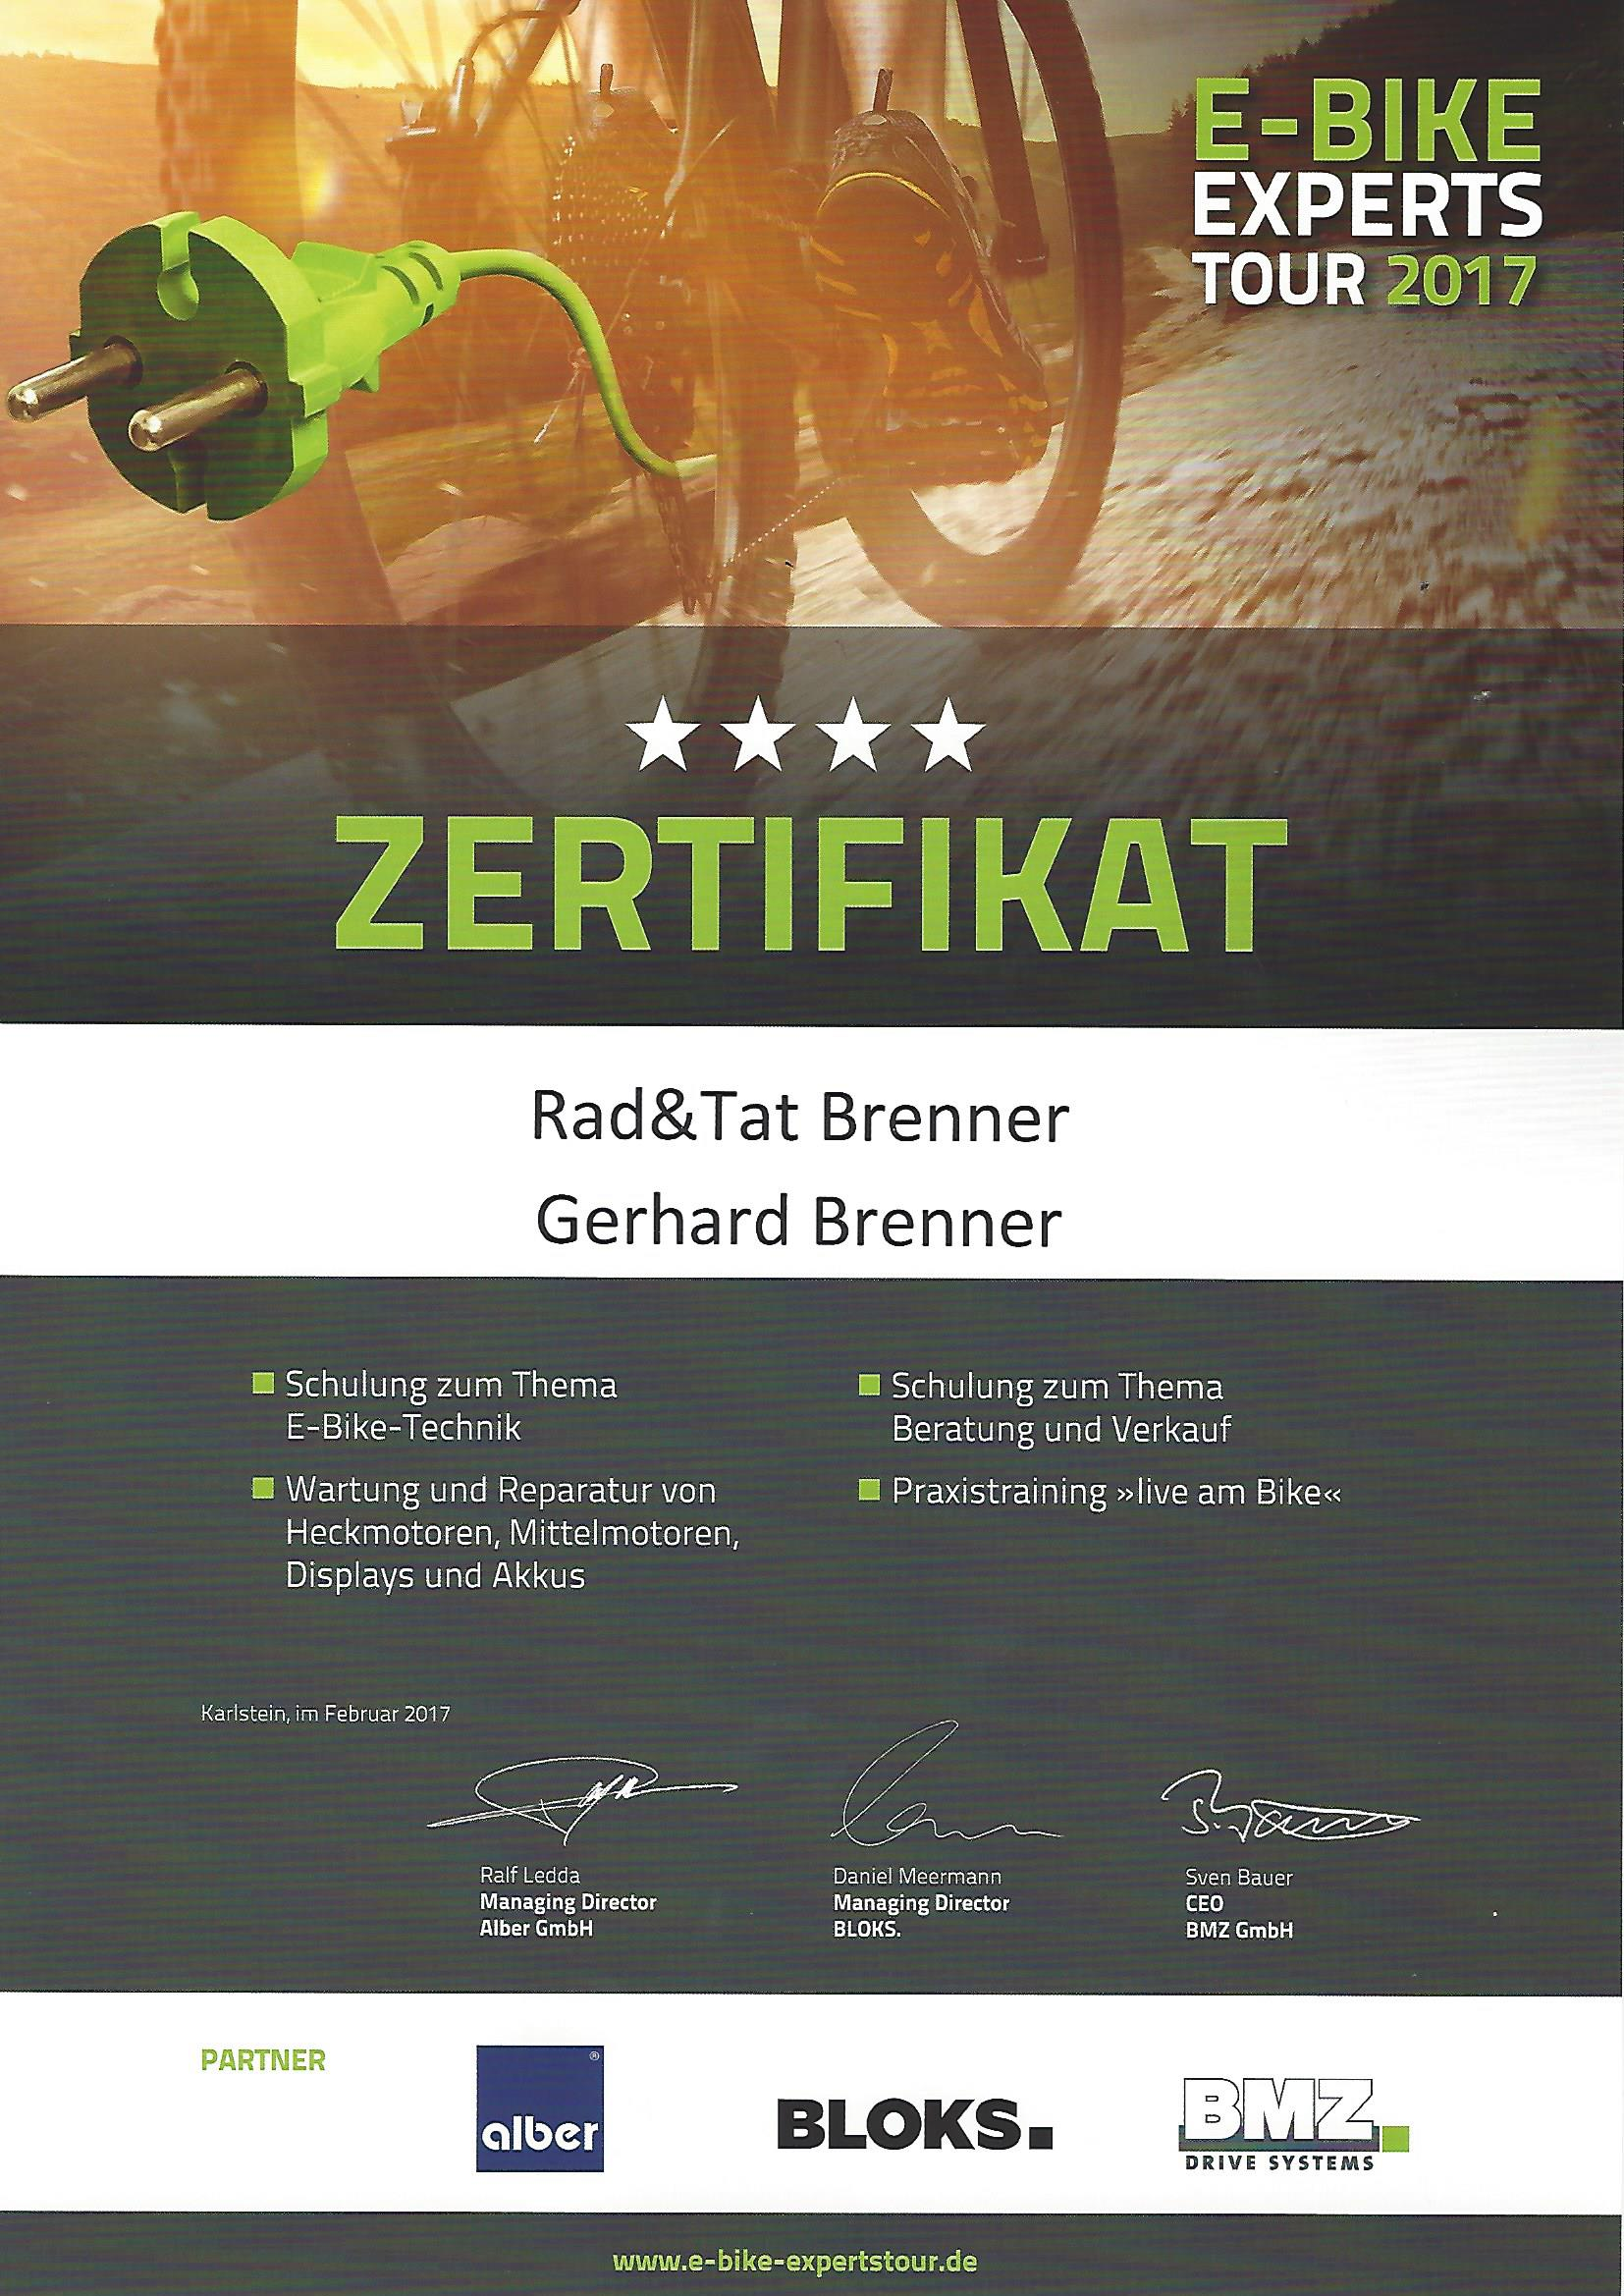 ebike-Experts-Tour 2017